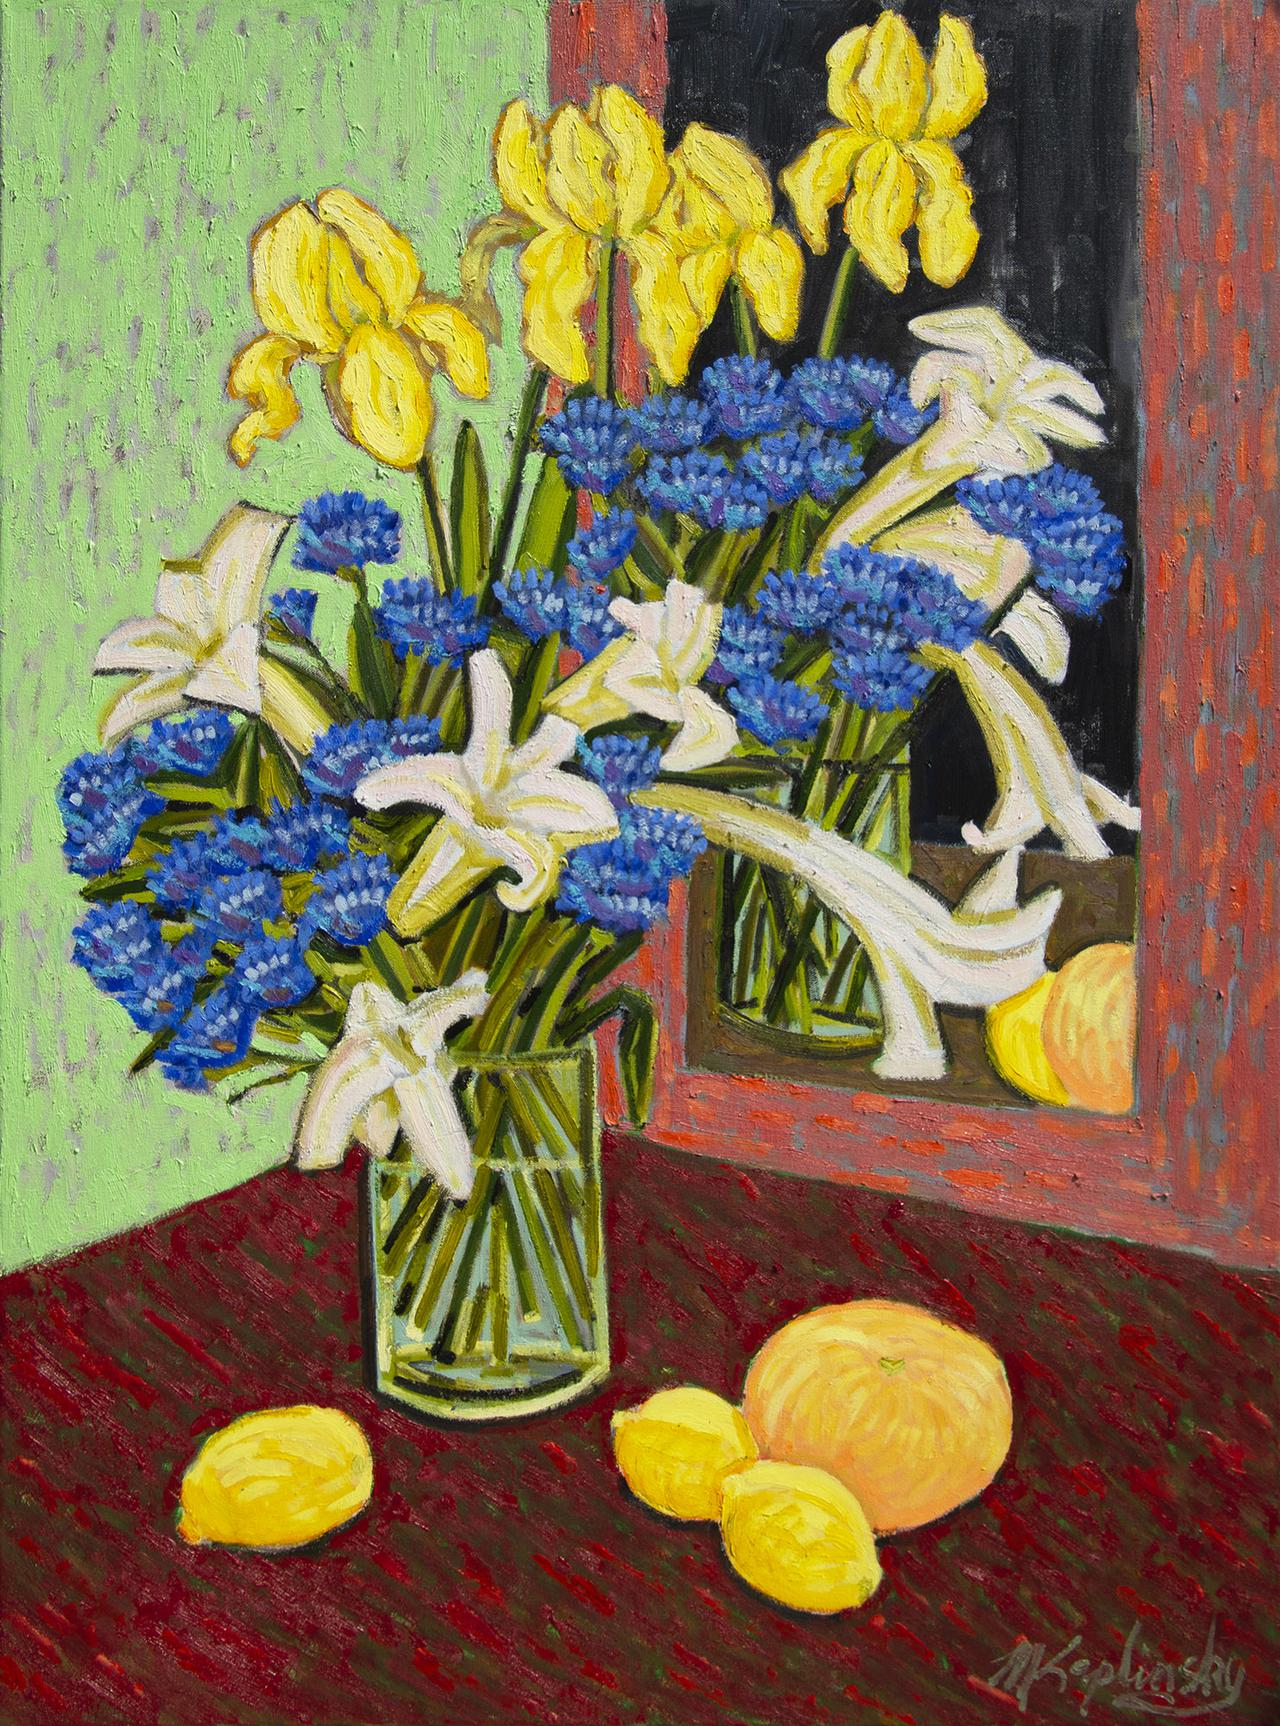 _dsc2998 cornflowers with lilies and iris 40x30inches oil on canvas by matt kaplinsky _web.jpg